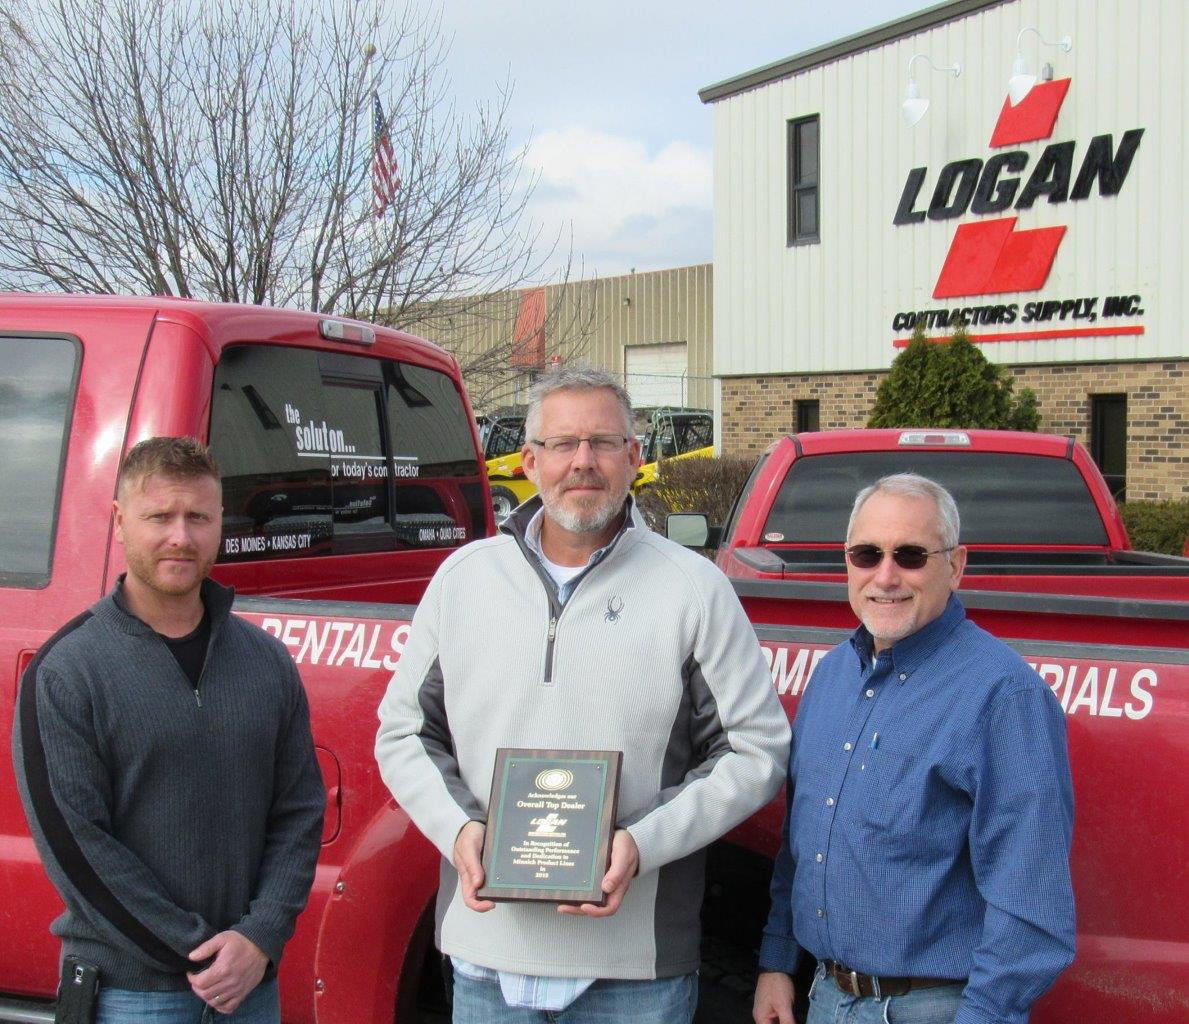 Midwest_Logan Contractors Supply